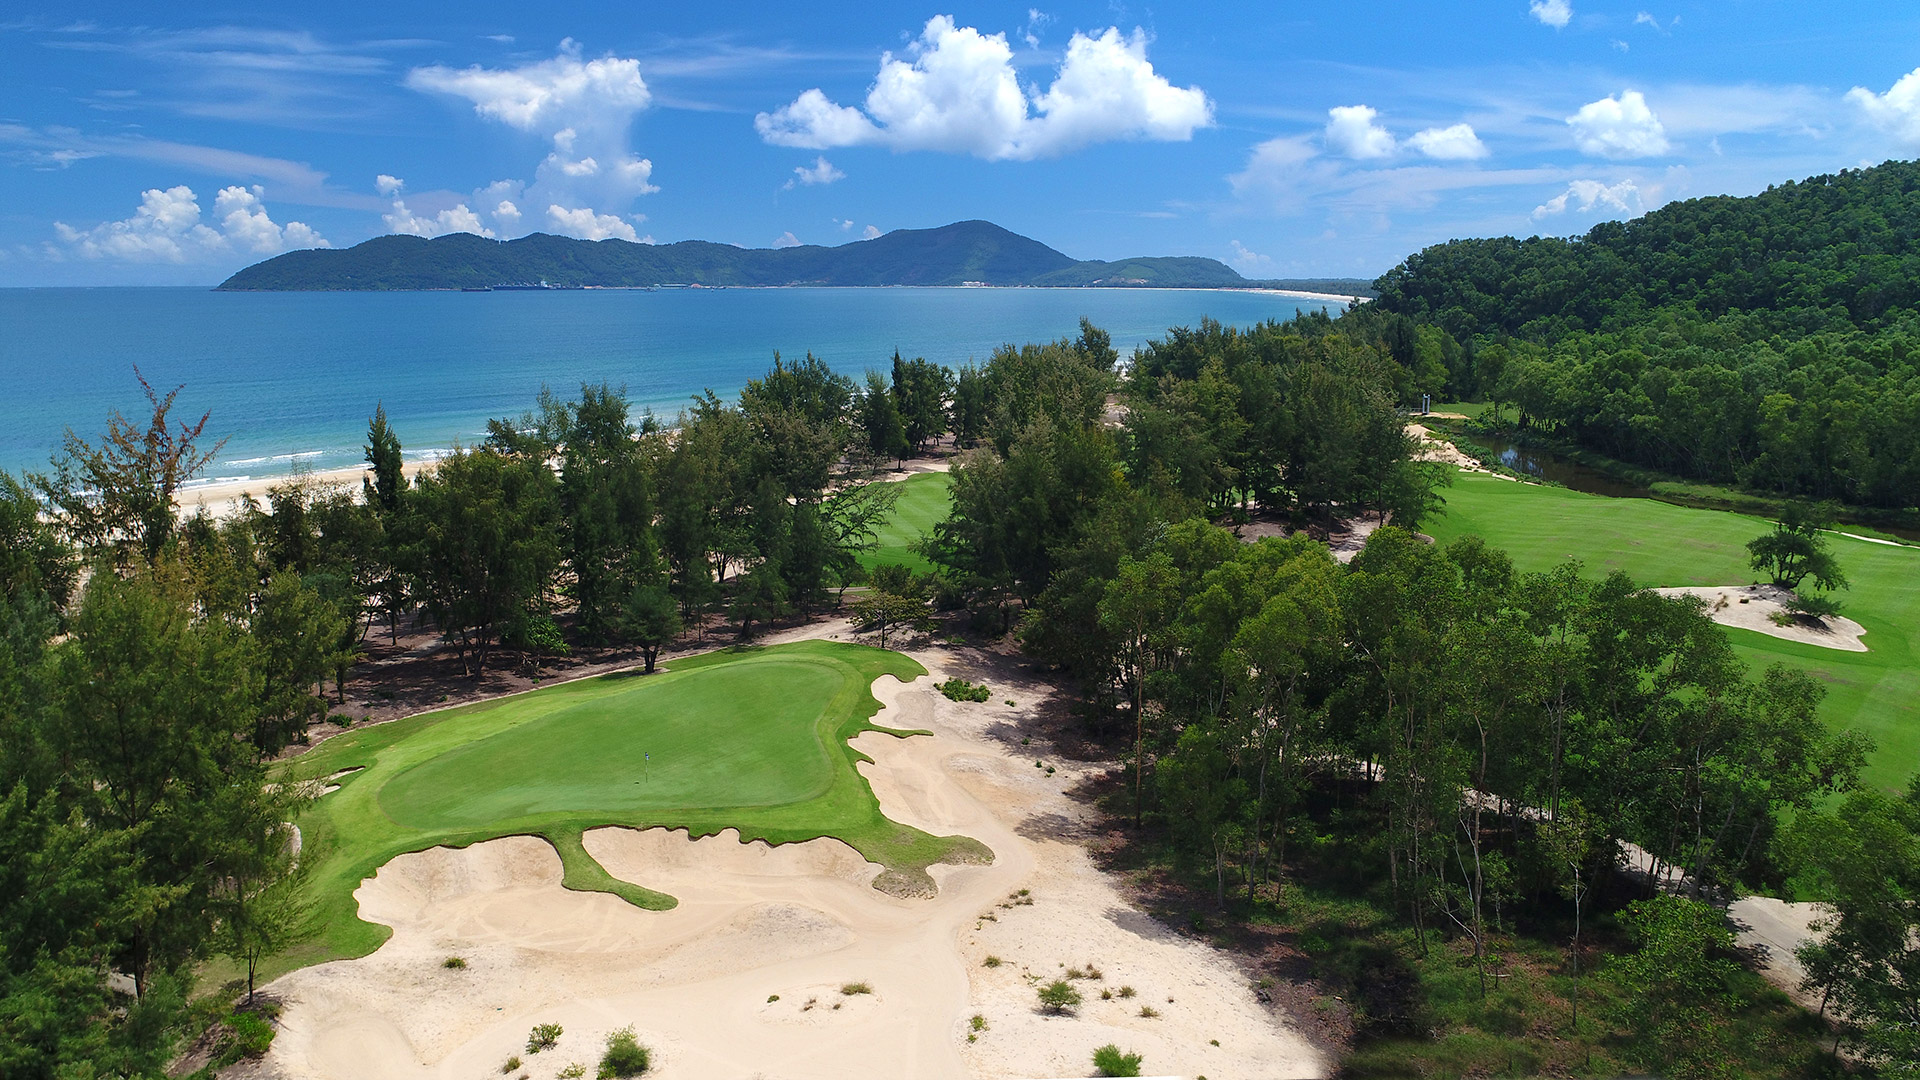 Laguna Golf course - Best golf course in Vietnam, Laguna Invitational 2018